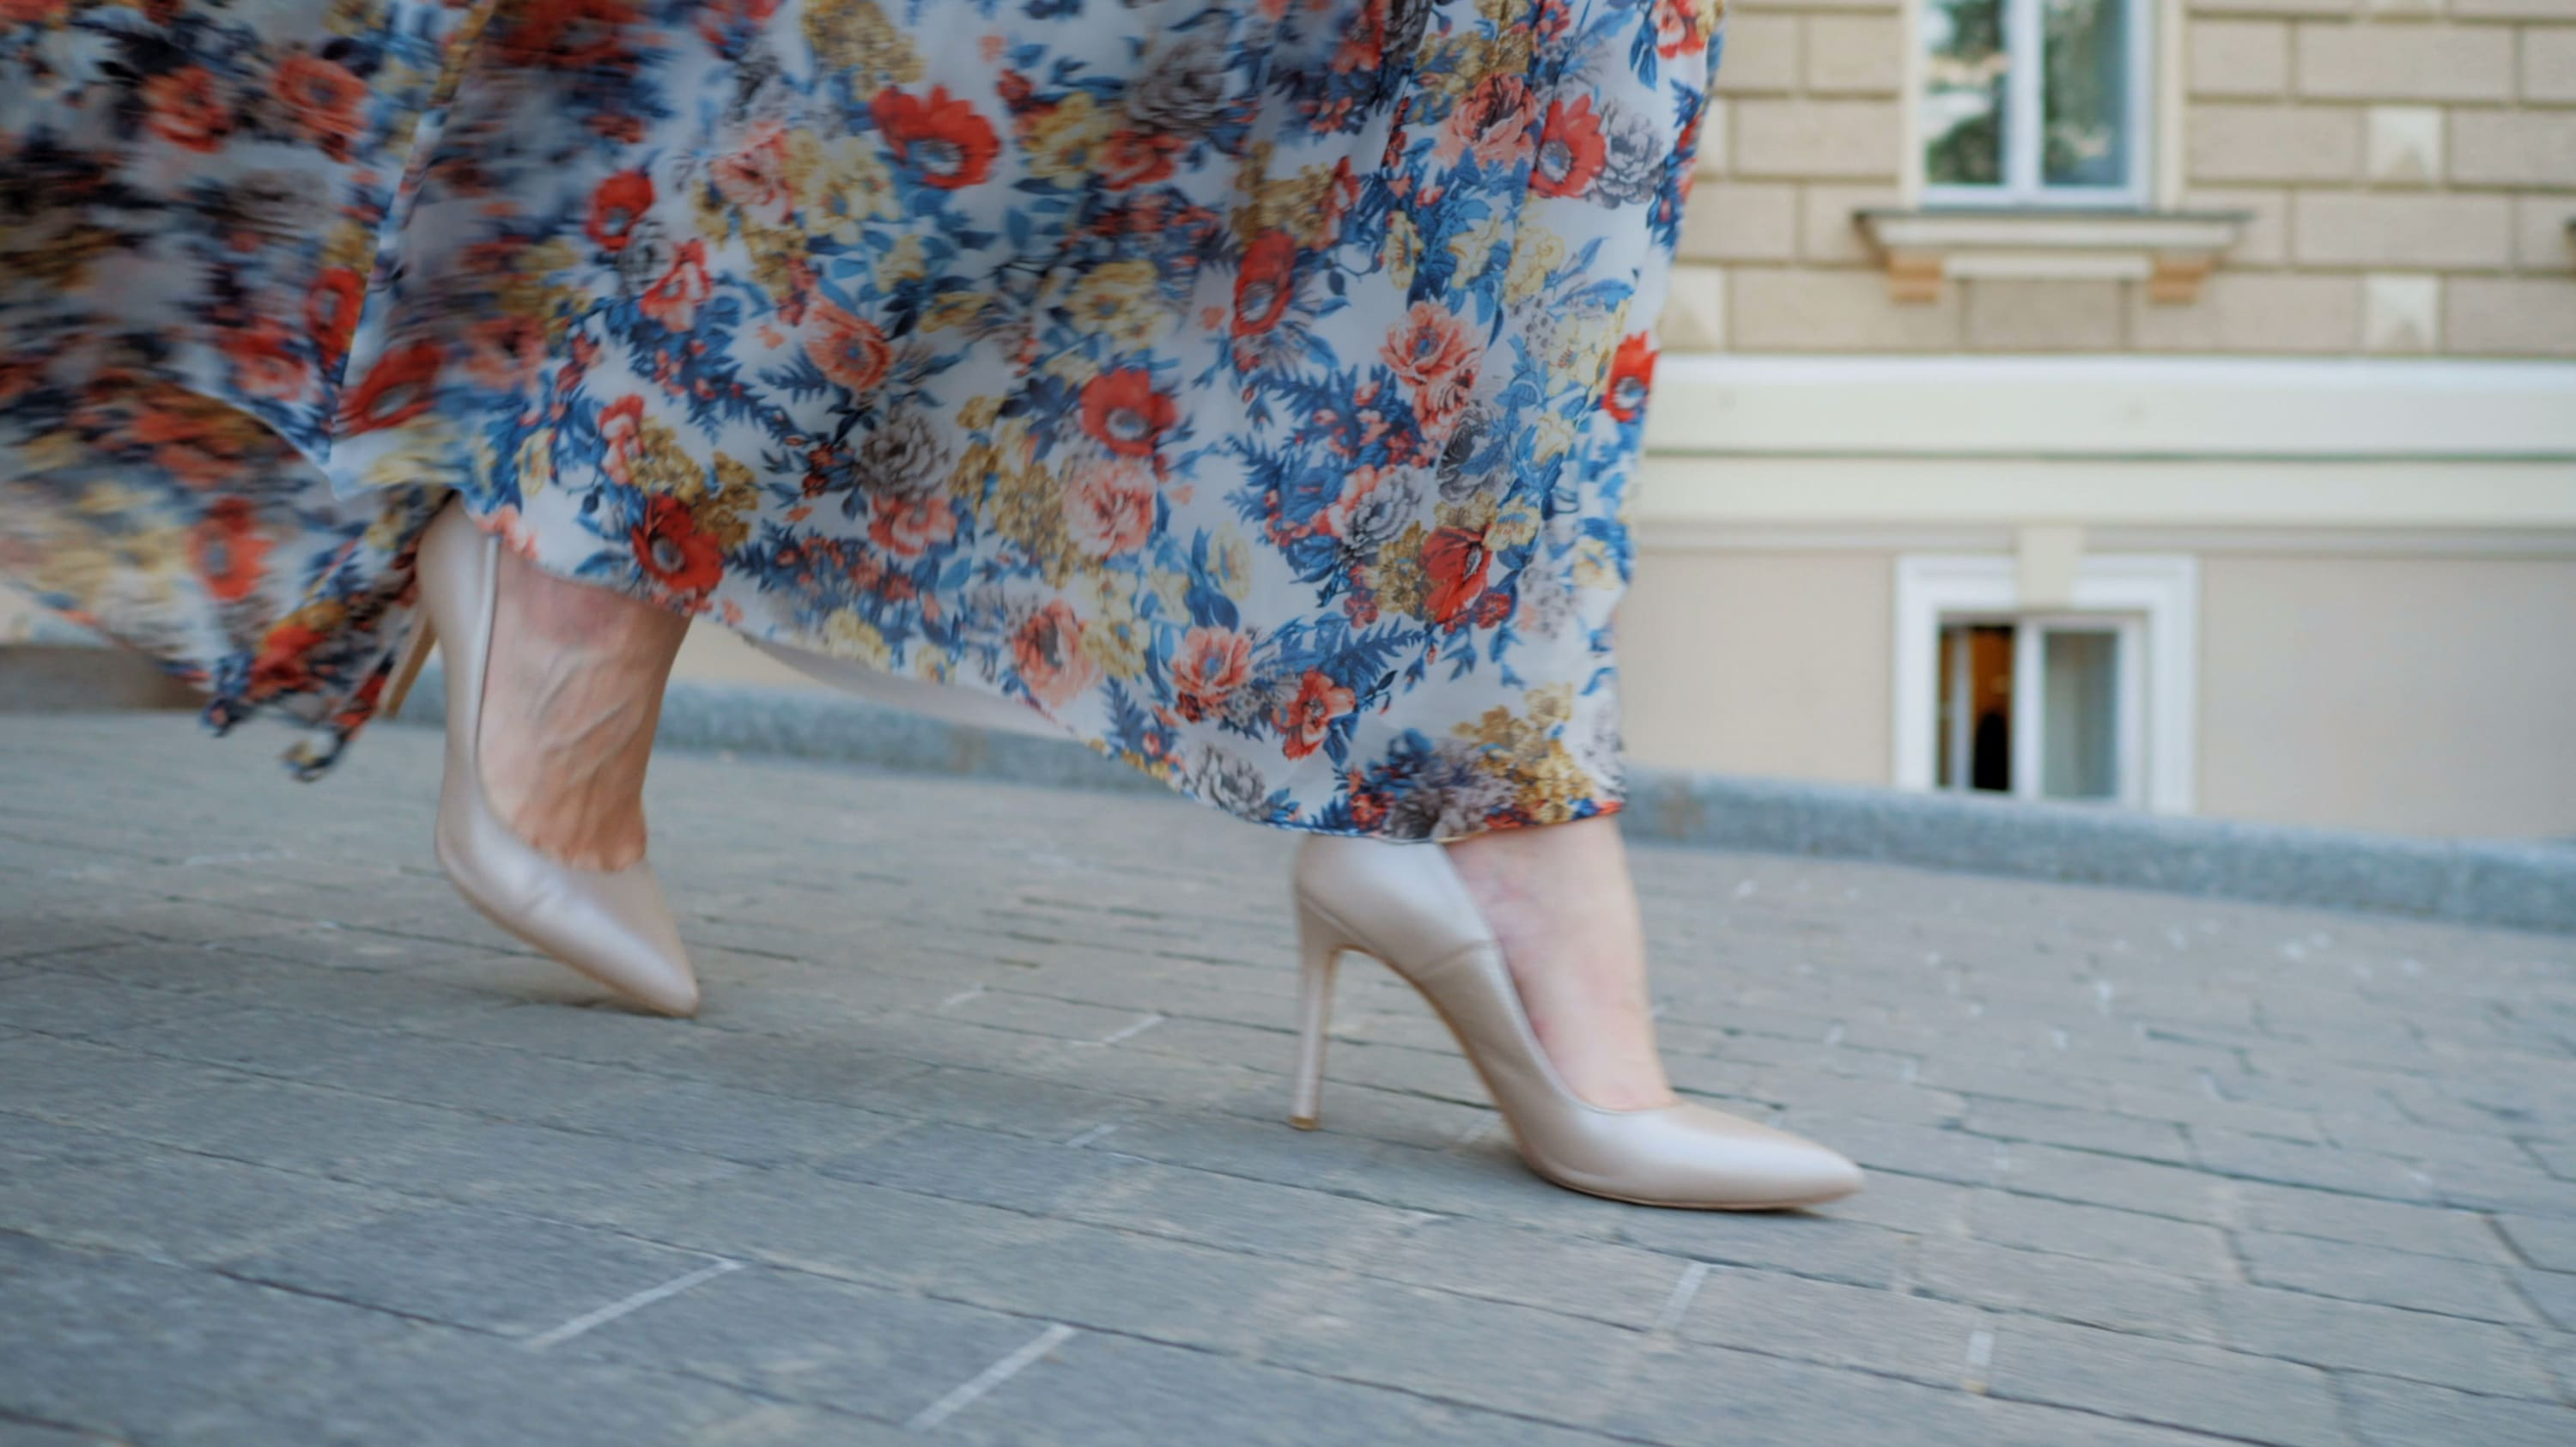 Footwear as the ultimate fashion statement